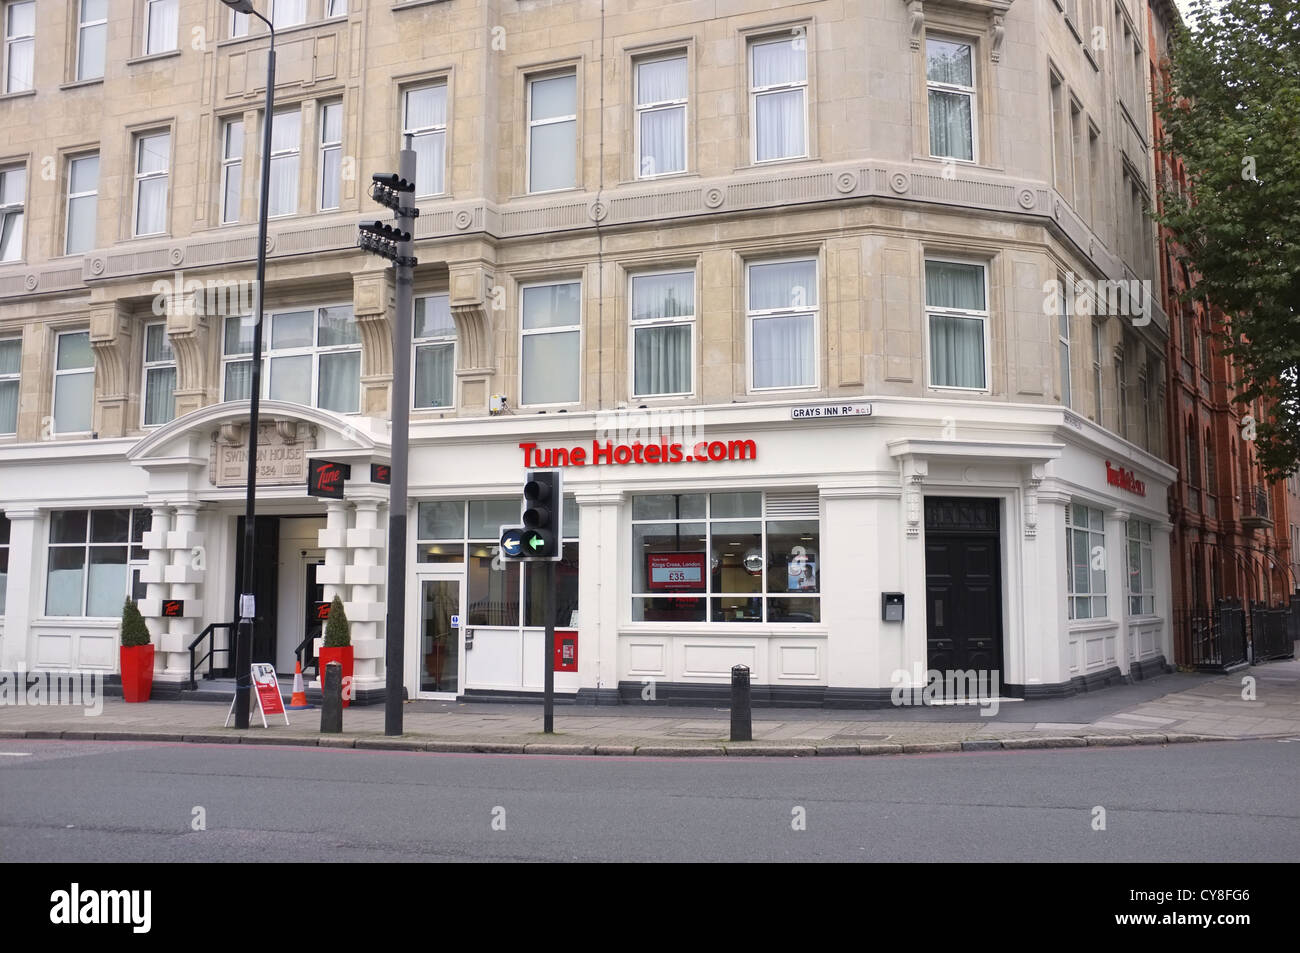 Tune Hotels.com in London - Stock Image